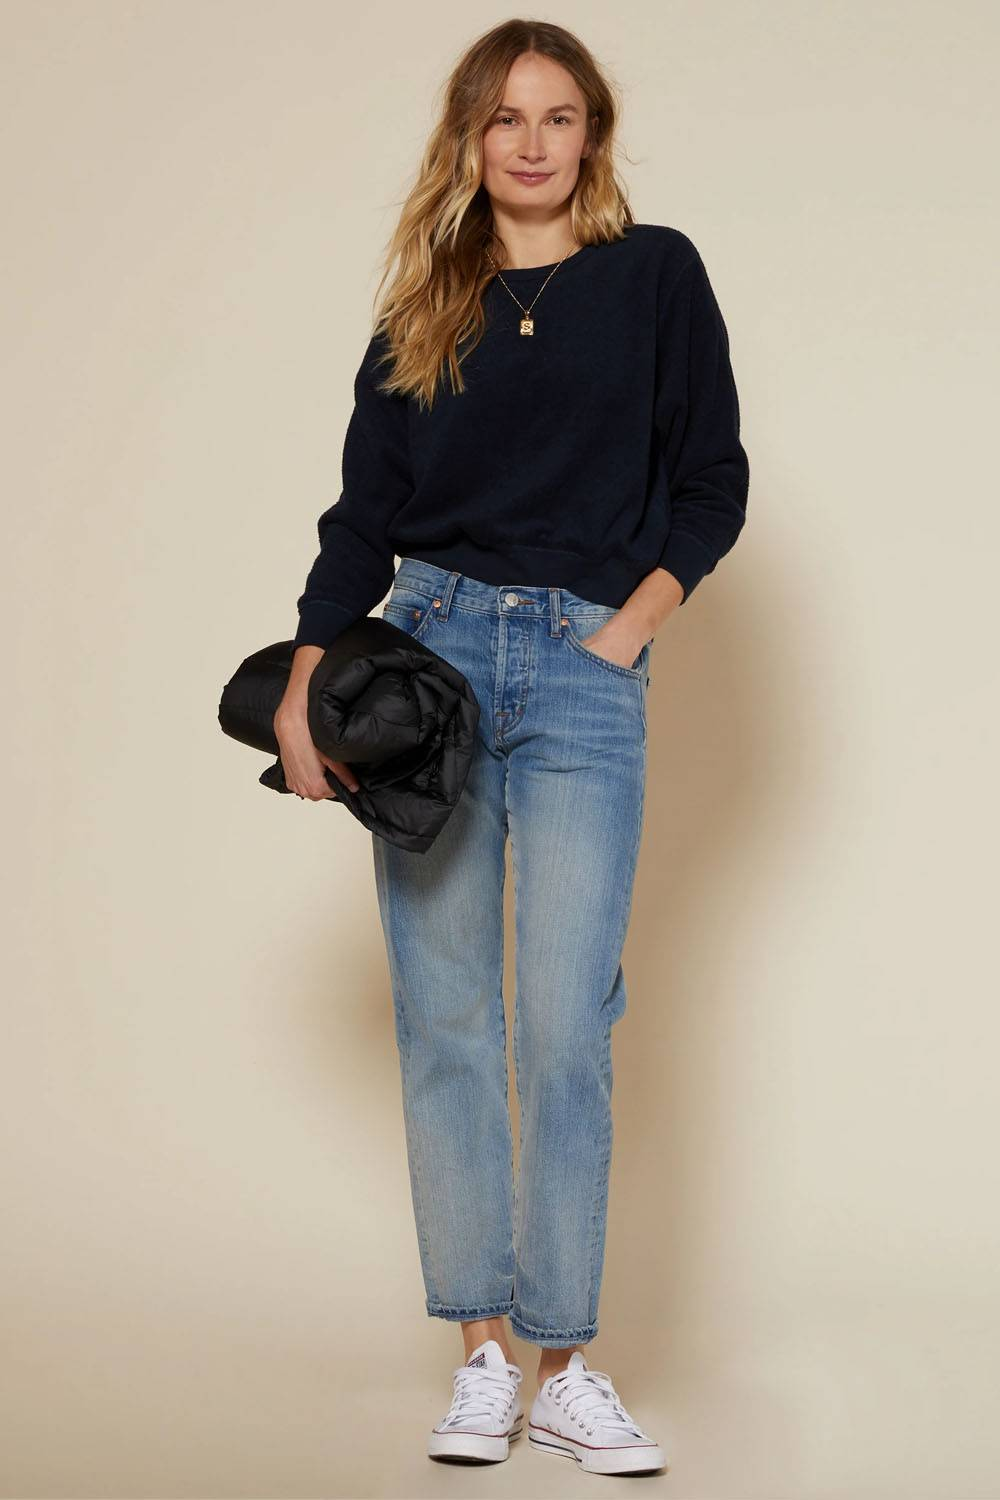 outerknown cute jeans outfit ideas